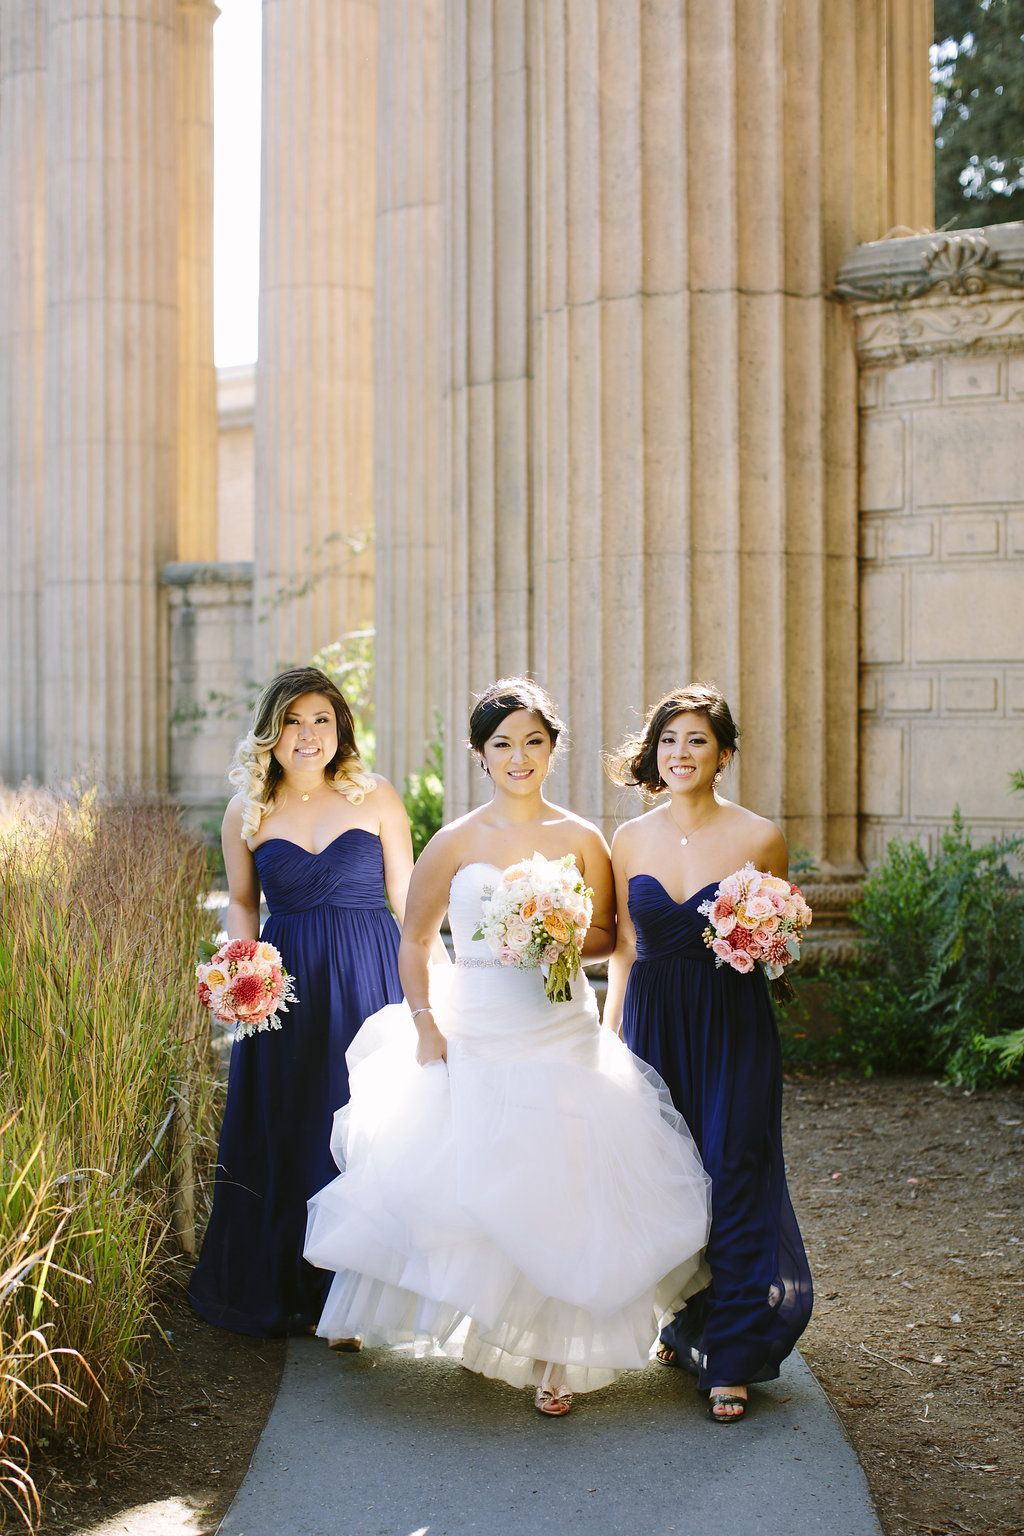 Donna morgan bridesmaid dresses in midnight carmen holt